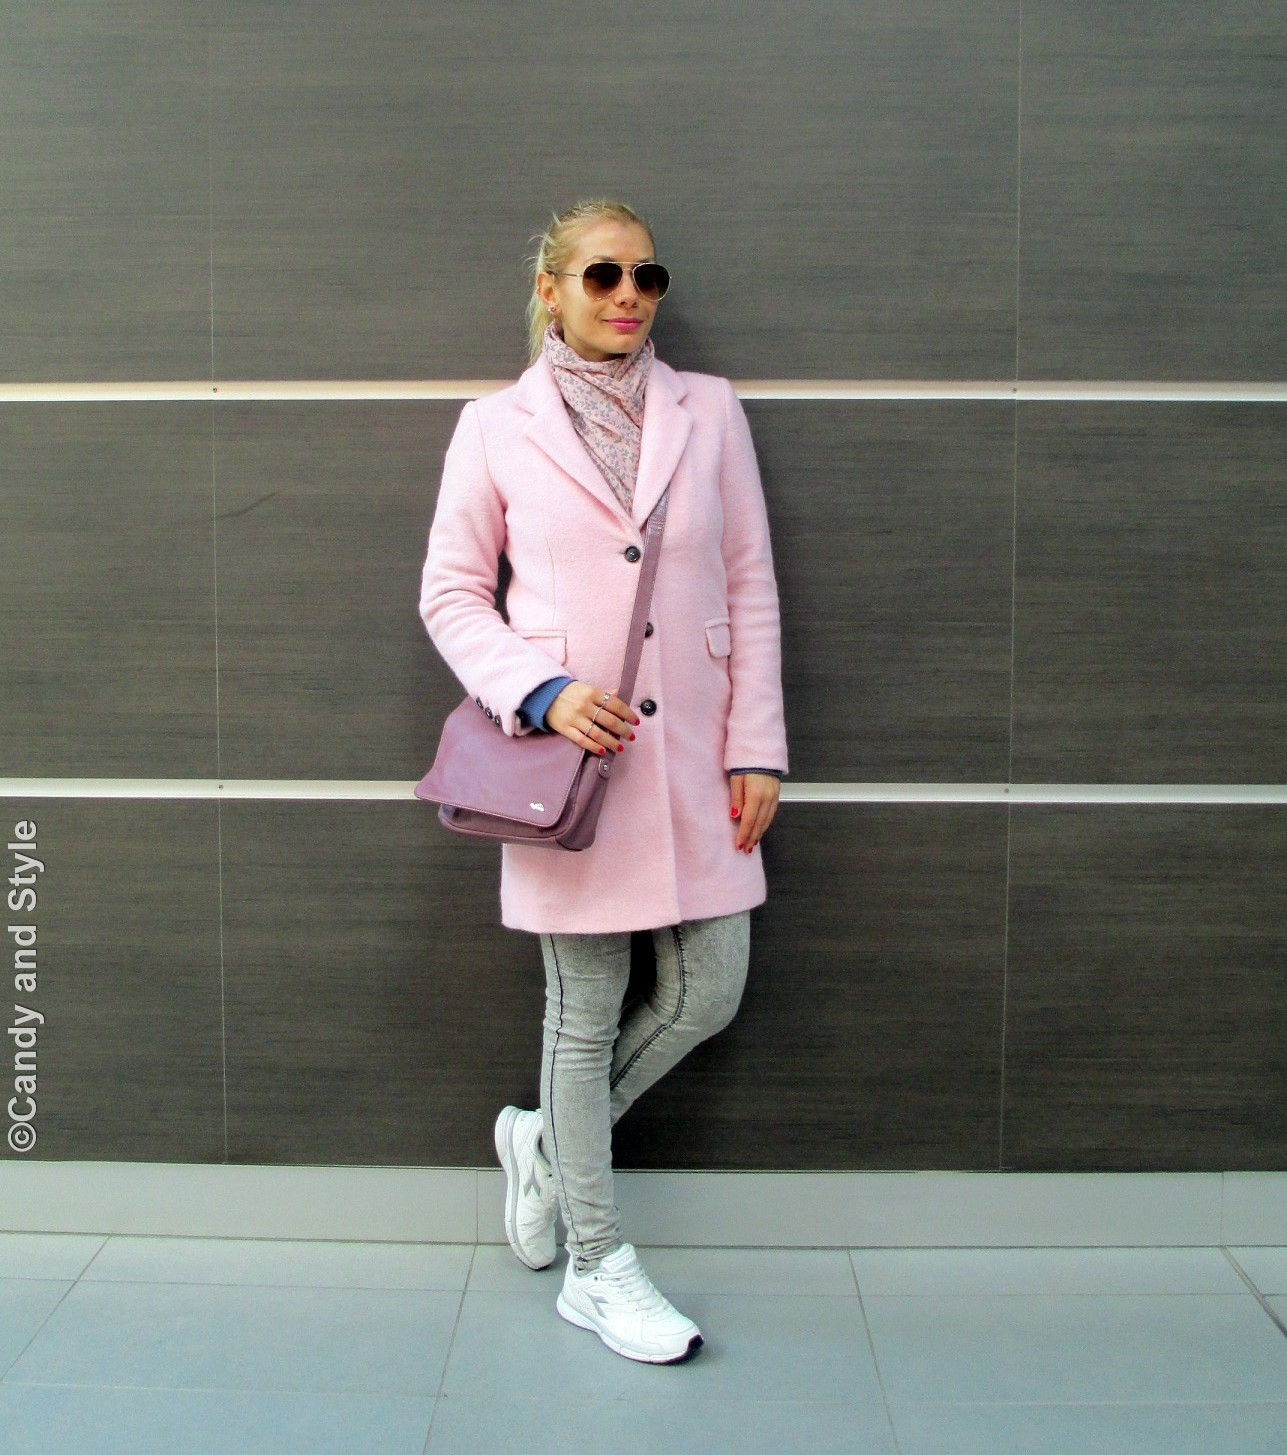 AviatorShades+PinkCoat+BlueSweatshirt+Jeggings+WhiteTrainers+PinkBag+HighPonytail+RedNails+PinkLips - Lilli Candy and Style Fashion Blog